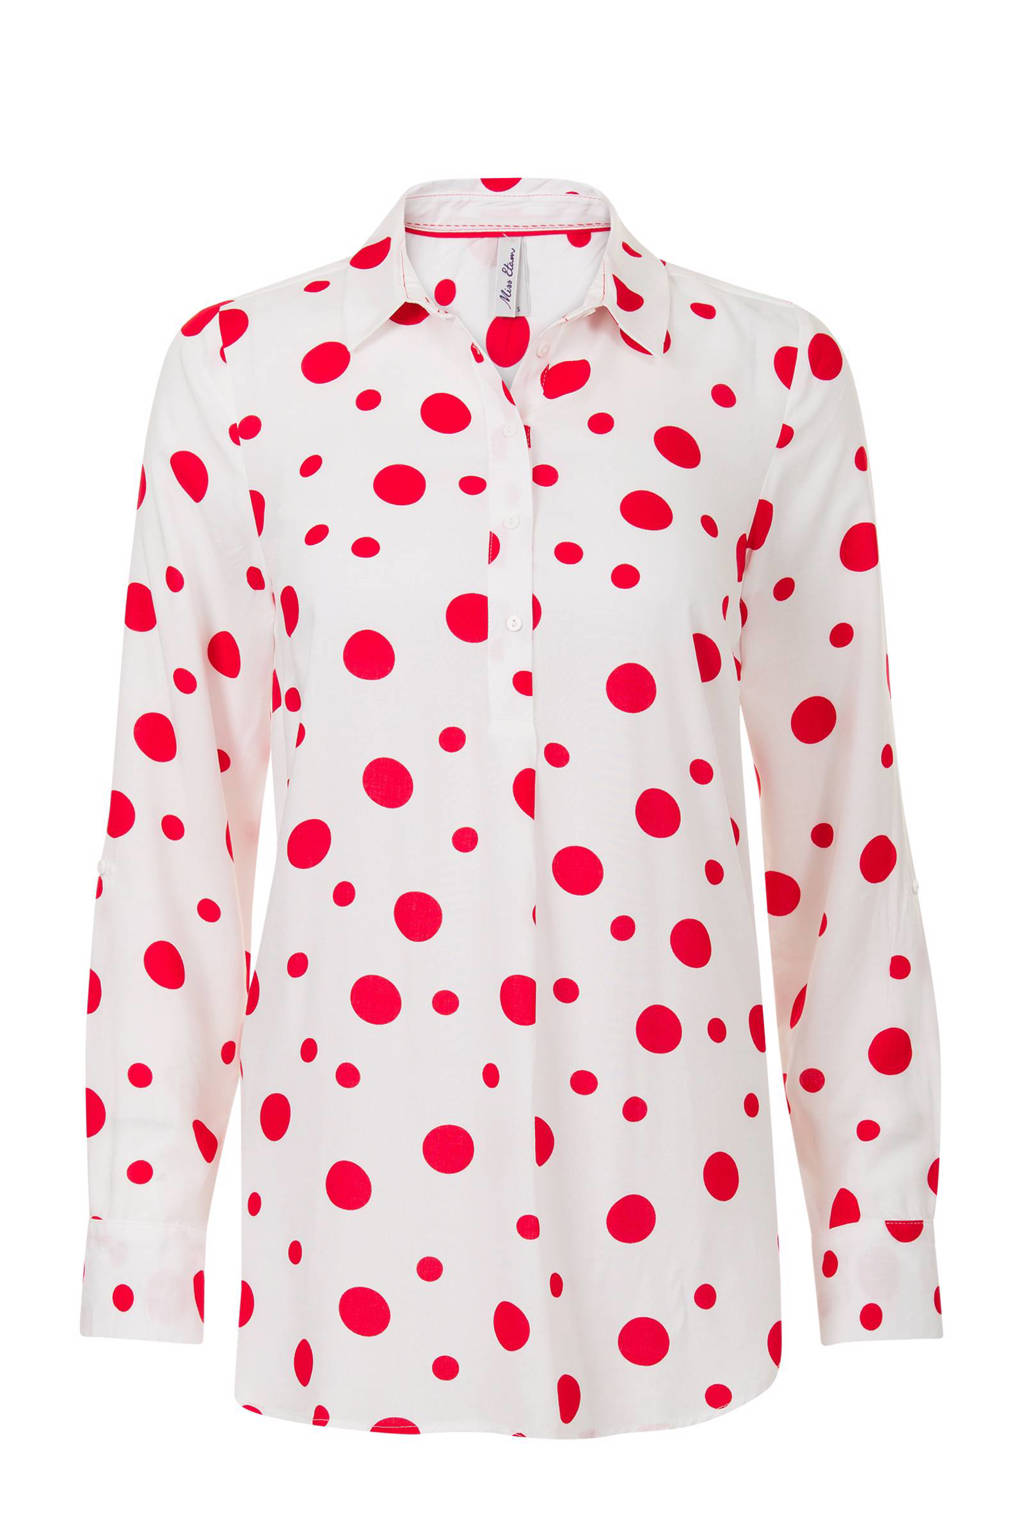 Miss Etam Regulier top met stippenprint wit - rood, Wit/rood